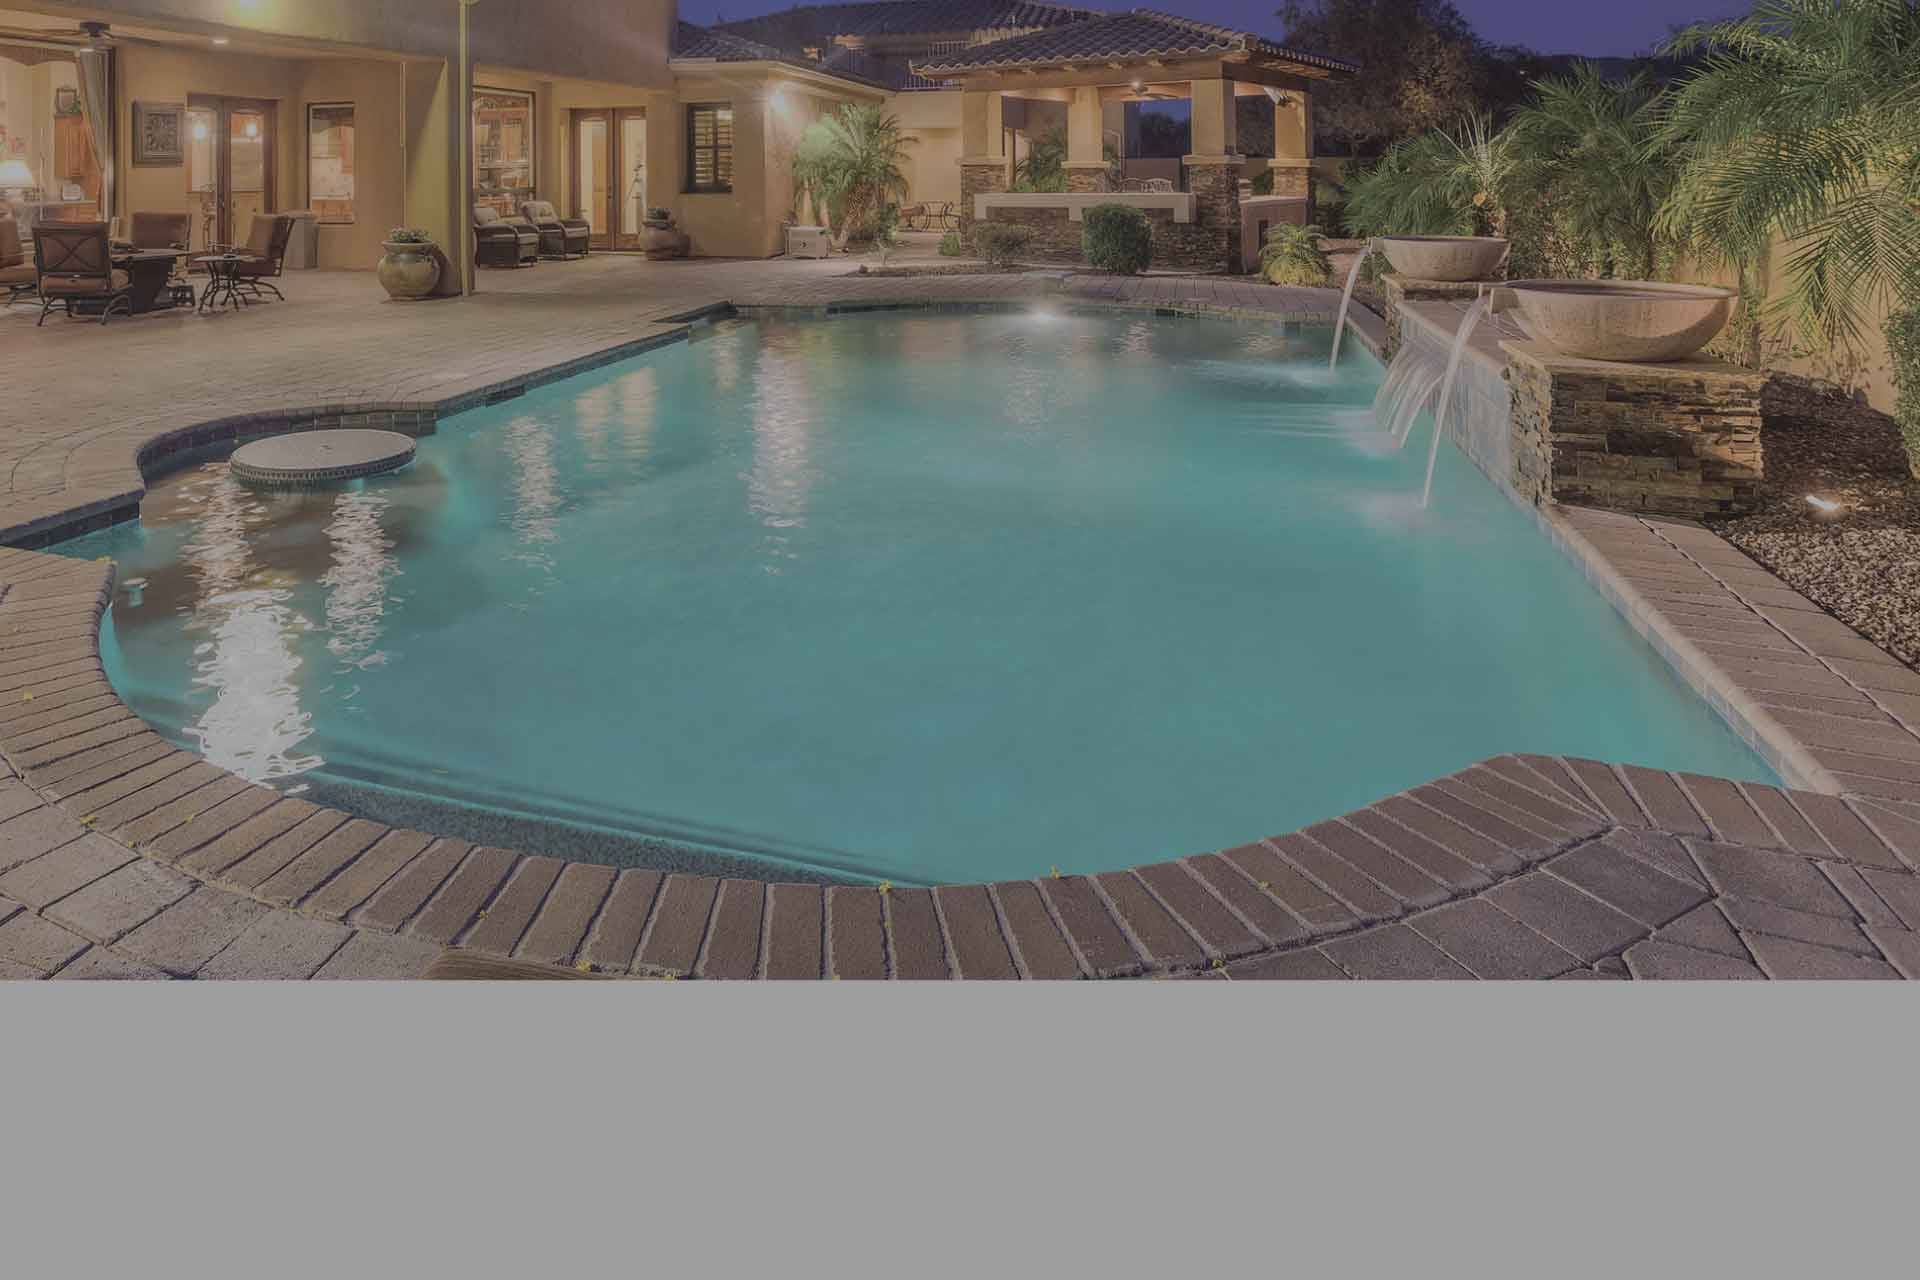 Phoenix pool builders top rated pool builder in phoenix for Top pool builders